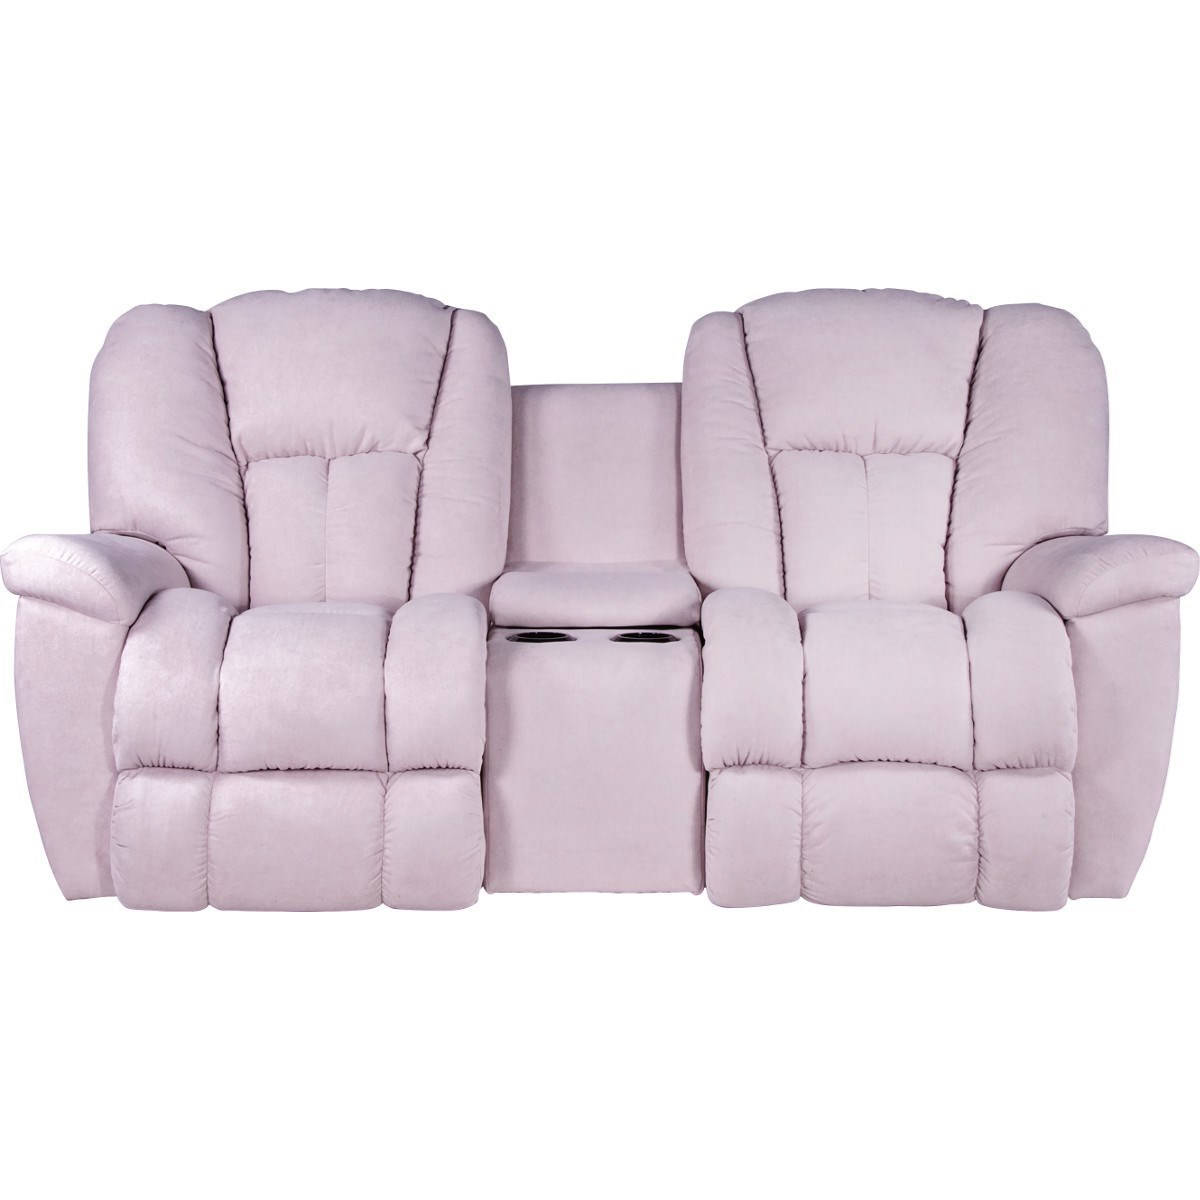 Power Recline Xrw Full Reclining Loveseat With Drink